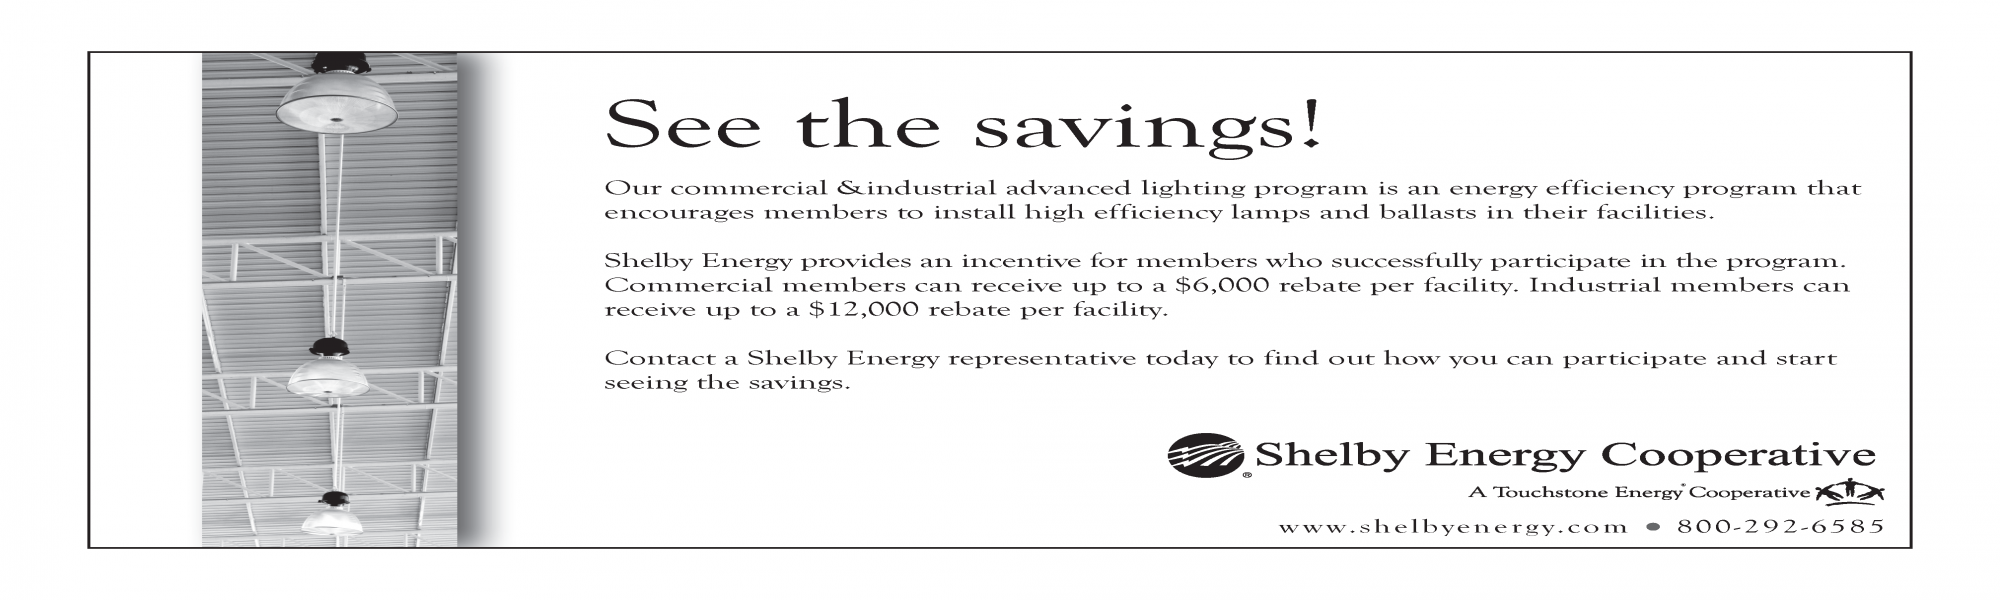 commercial lighting 2015-2000x600.png